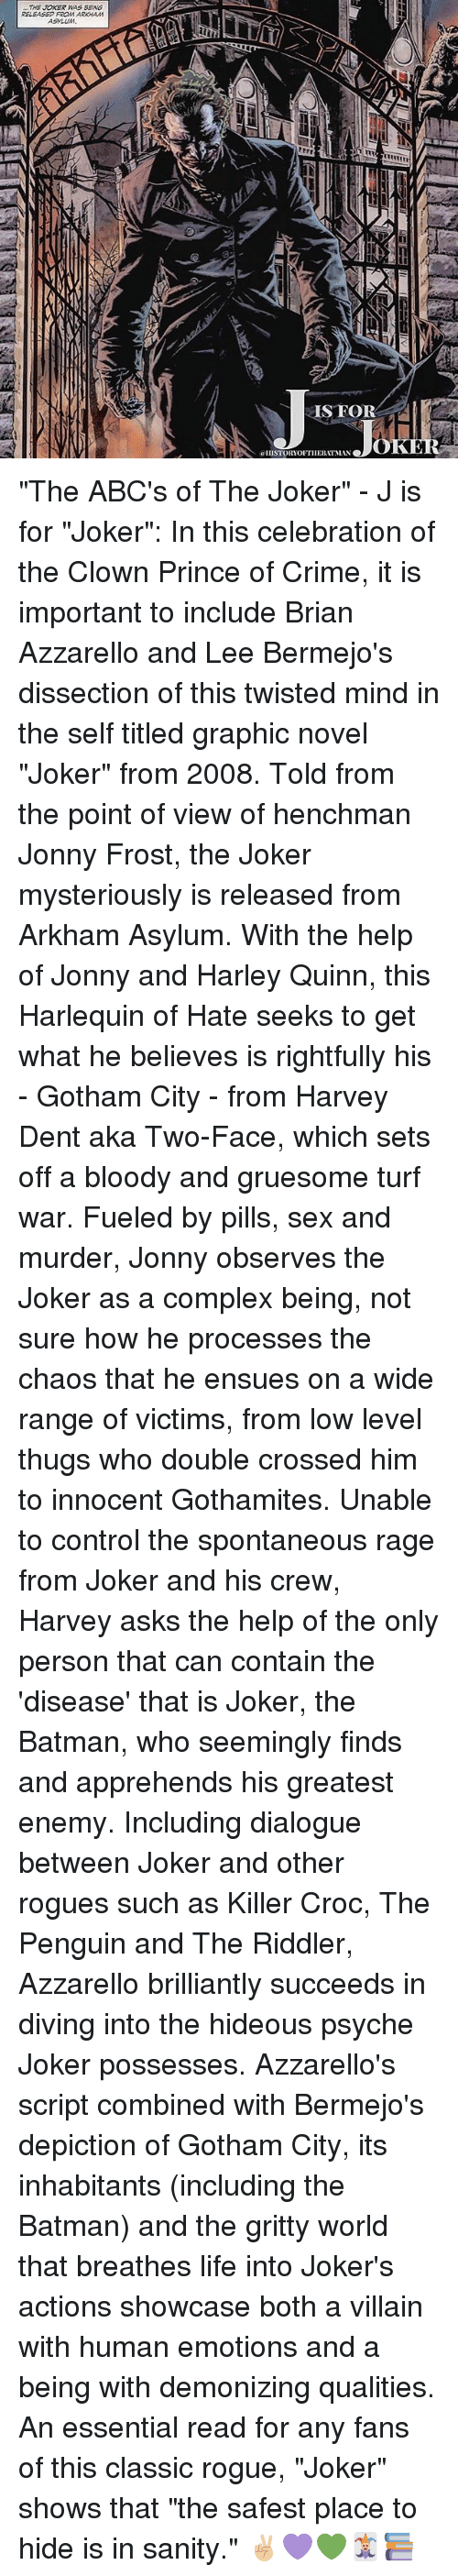 "Batman, Complex, and Crime: THE JOKER WAS BENG  RELEASED FROM ARKAHAM  SFOR  OK  ISTORTOFTIIEBIT MAN ""The ABC's of The Joker"" - J is for ""Joker"": In this celebration of the Clown Prince of Crime, it is important to include Brian Azzarello and Lee Bermejo's dissection of this twisted mind in the self titled graphic novel ""Joker"" from 2008. Told from the point of view of henchman Jonny Frost, the Joker mysteriously is released from Arkham Asylum. With the help of Jonny and Harley Quinn, this Harlequin of Hate seeks to get what he believes is rightfully his - Gotham City - from Harvey Dent aka Two-Face, which sets off a bloody and gruesome turf war. Fueled by pills, sex and murder, Jonny observes the Joker as a complex being, not sure how he processes the chaos that he ensues on a wide range of victims, from low level thugs who double crossed him to innocent Gothamites. Unable to control the spontaneous rage from Joker and his crew, Harvey asks the help of the only person that can contain the 'disease' that is Joker, the Batman, who seemingly finds and apprehends his greatest enemy. Including dialogue between Joker and other rogues such as Killer Croc, The Penguin and The Riddler, Azzarello brilliantly succeeds in diving into the hideous psyche Joker possesses. Azzarello's script combined with Bermejo's depiction of Gotham City, its inhabitants (including the Batman) and the gritty world that breathes life into Joker's actions showcase both a villain with human emotions and a being with demonizing qualities. An essential read for any fans of this classic rogue, ""Joker"" shows that ""the safest place to hide is in sanity."" ✌🏼💜💚🃏📚"